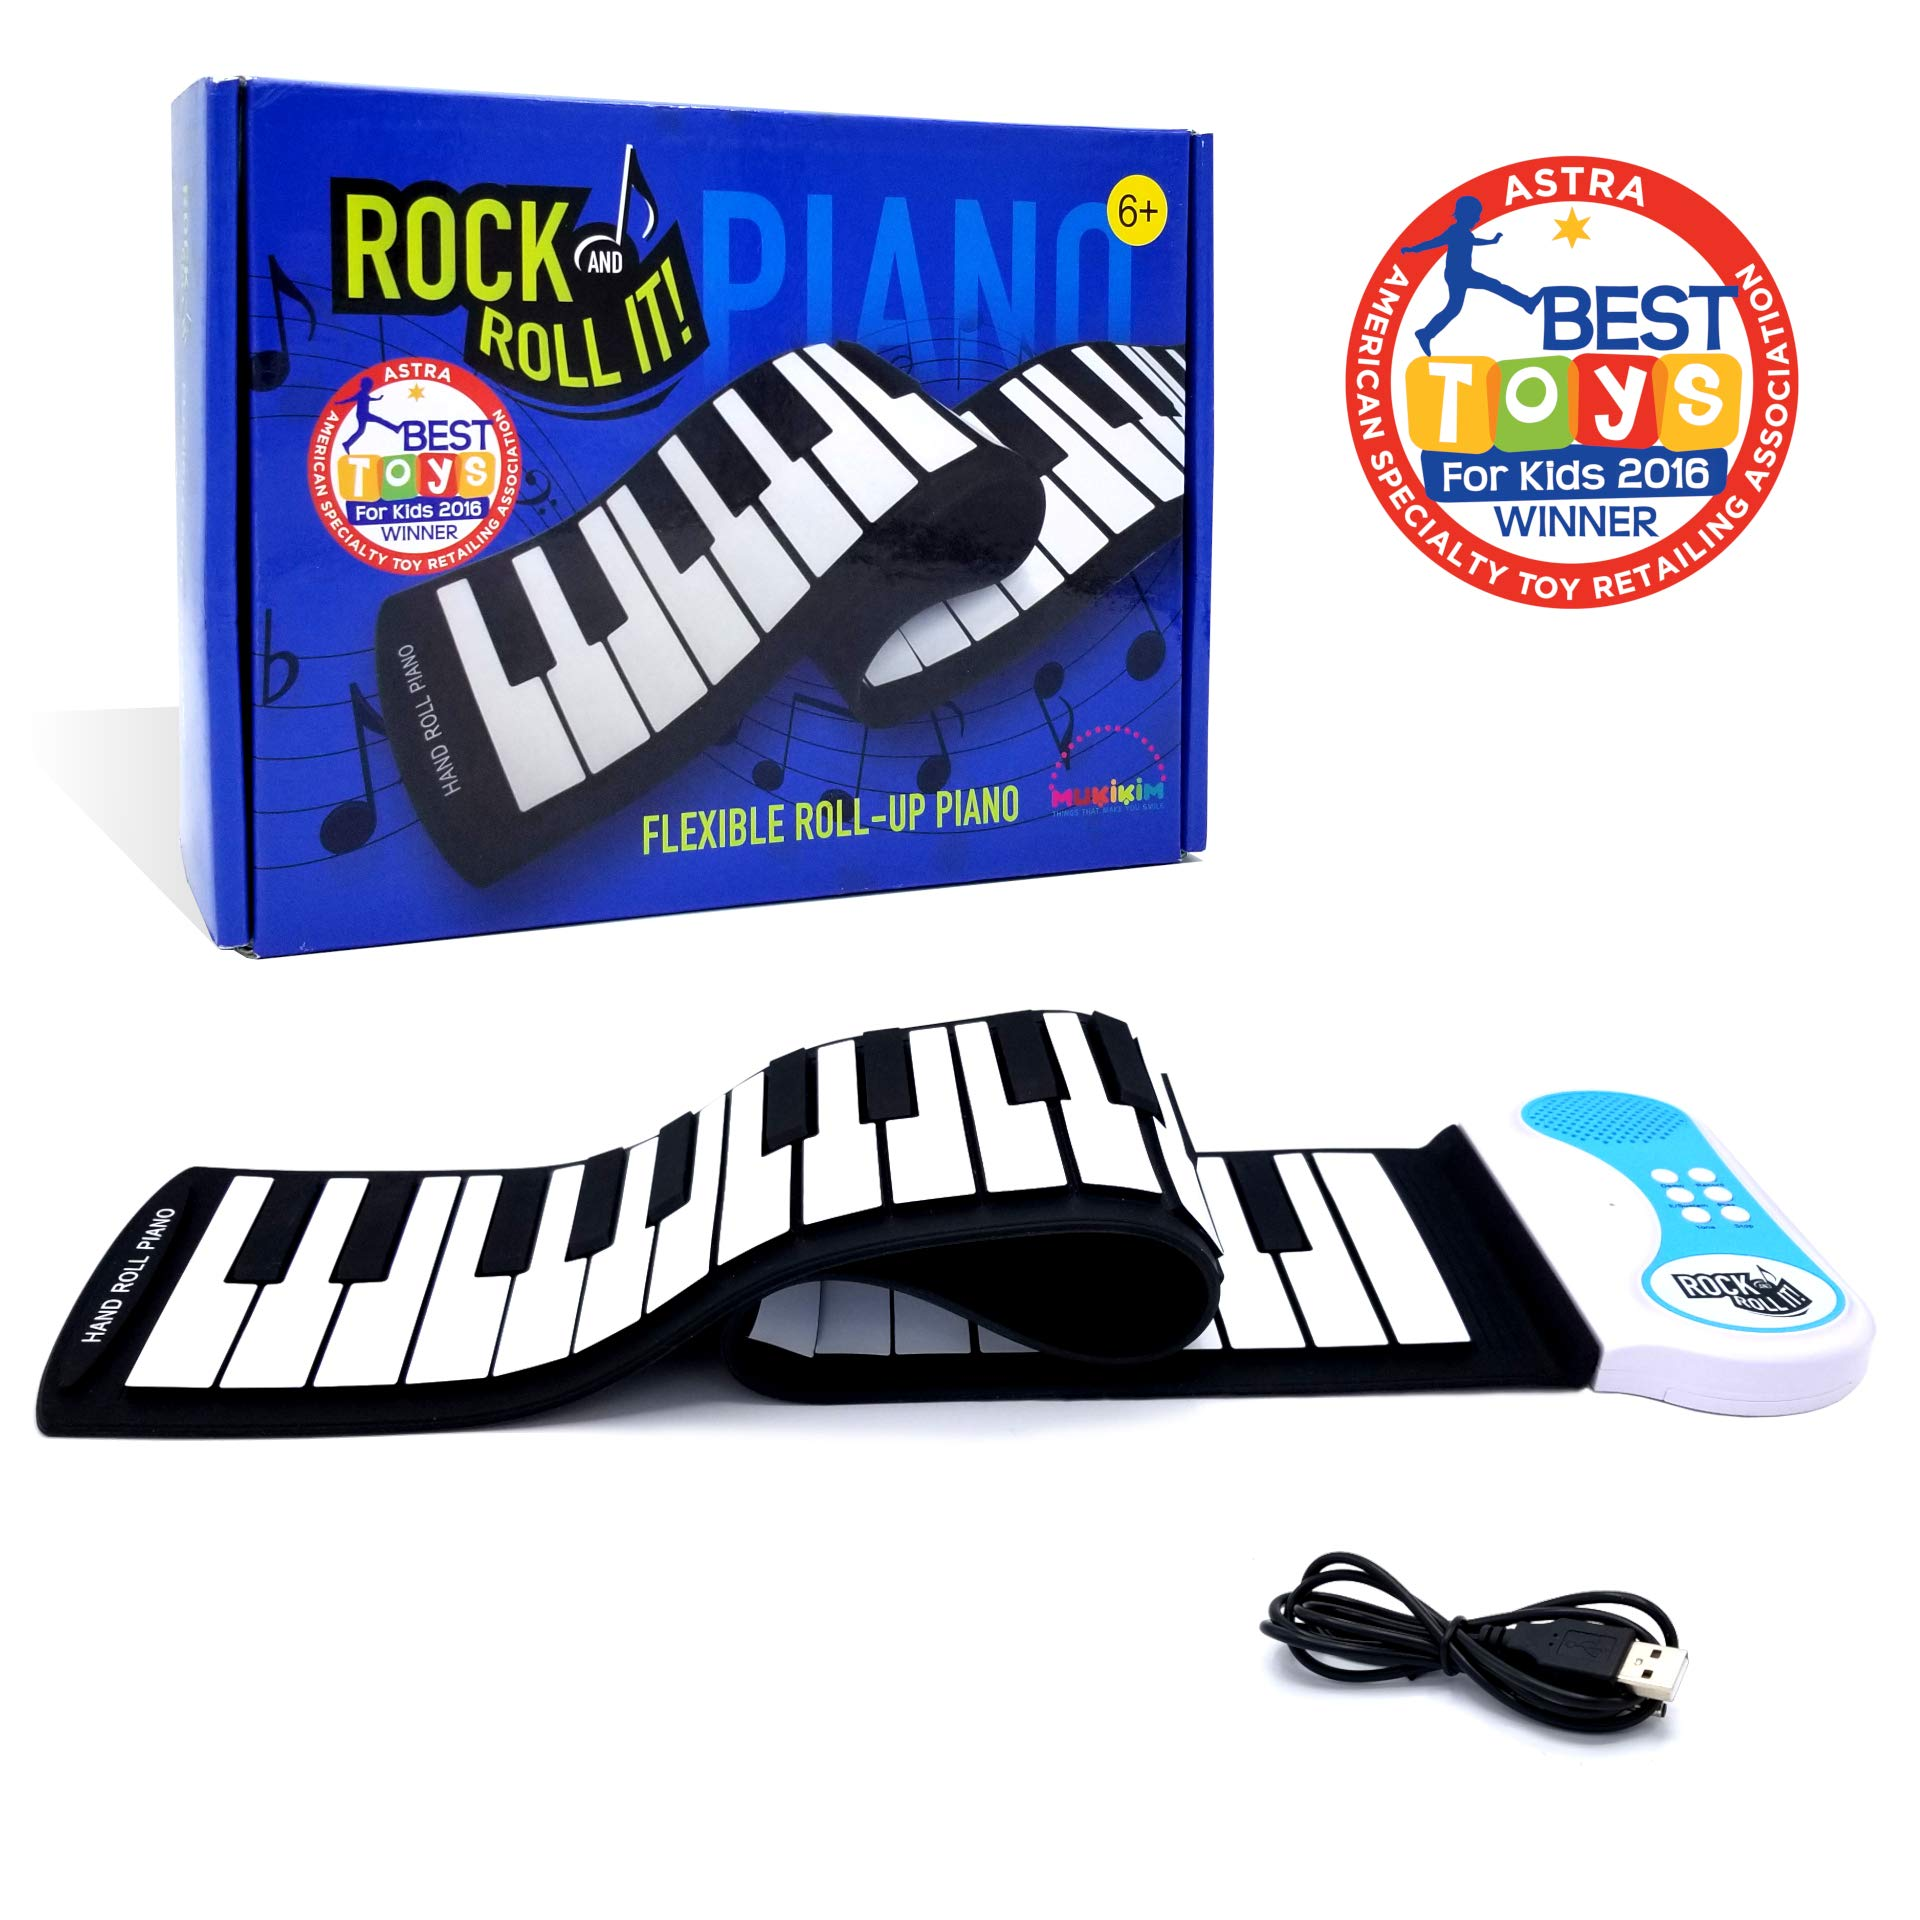 MukikiM Rock And Roll It - Piano. Flexible, Completely Portable, 49 standard Keys, battery OR USB powered. 2016 ASTRA Best Toy for Kids Award Winner! by MukikiM